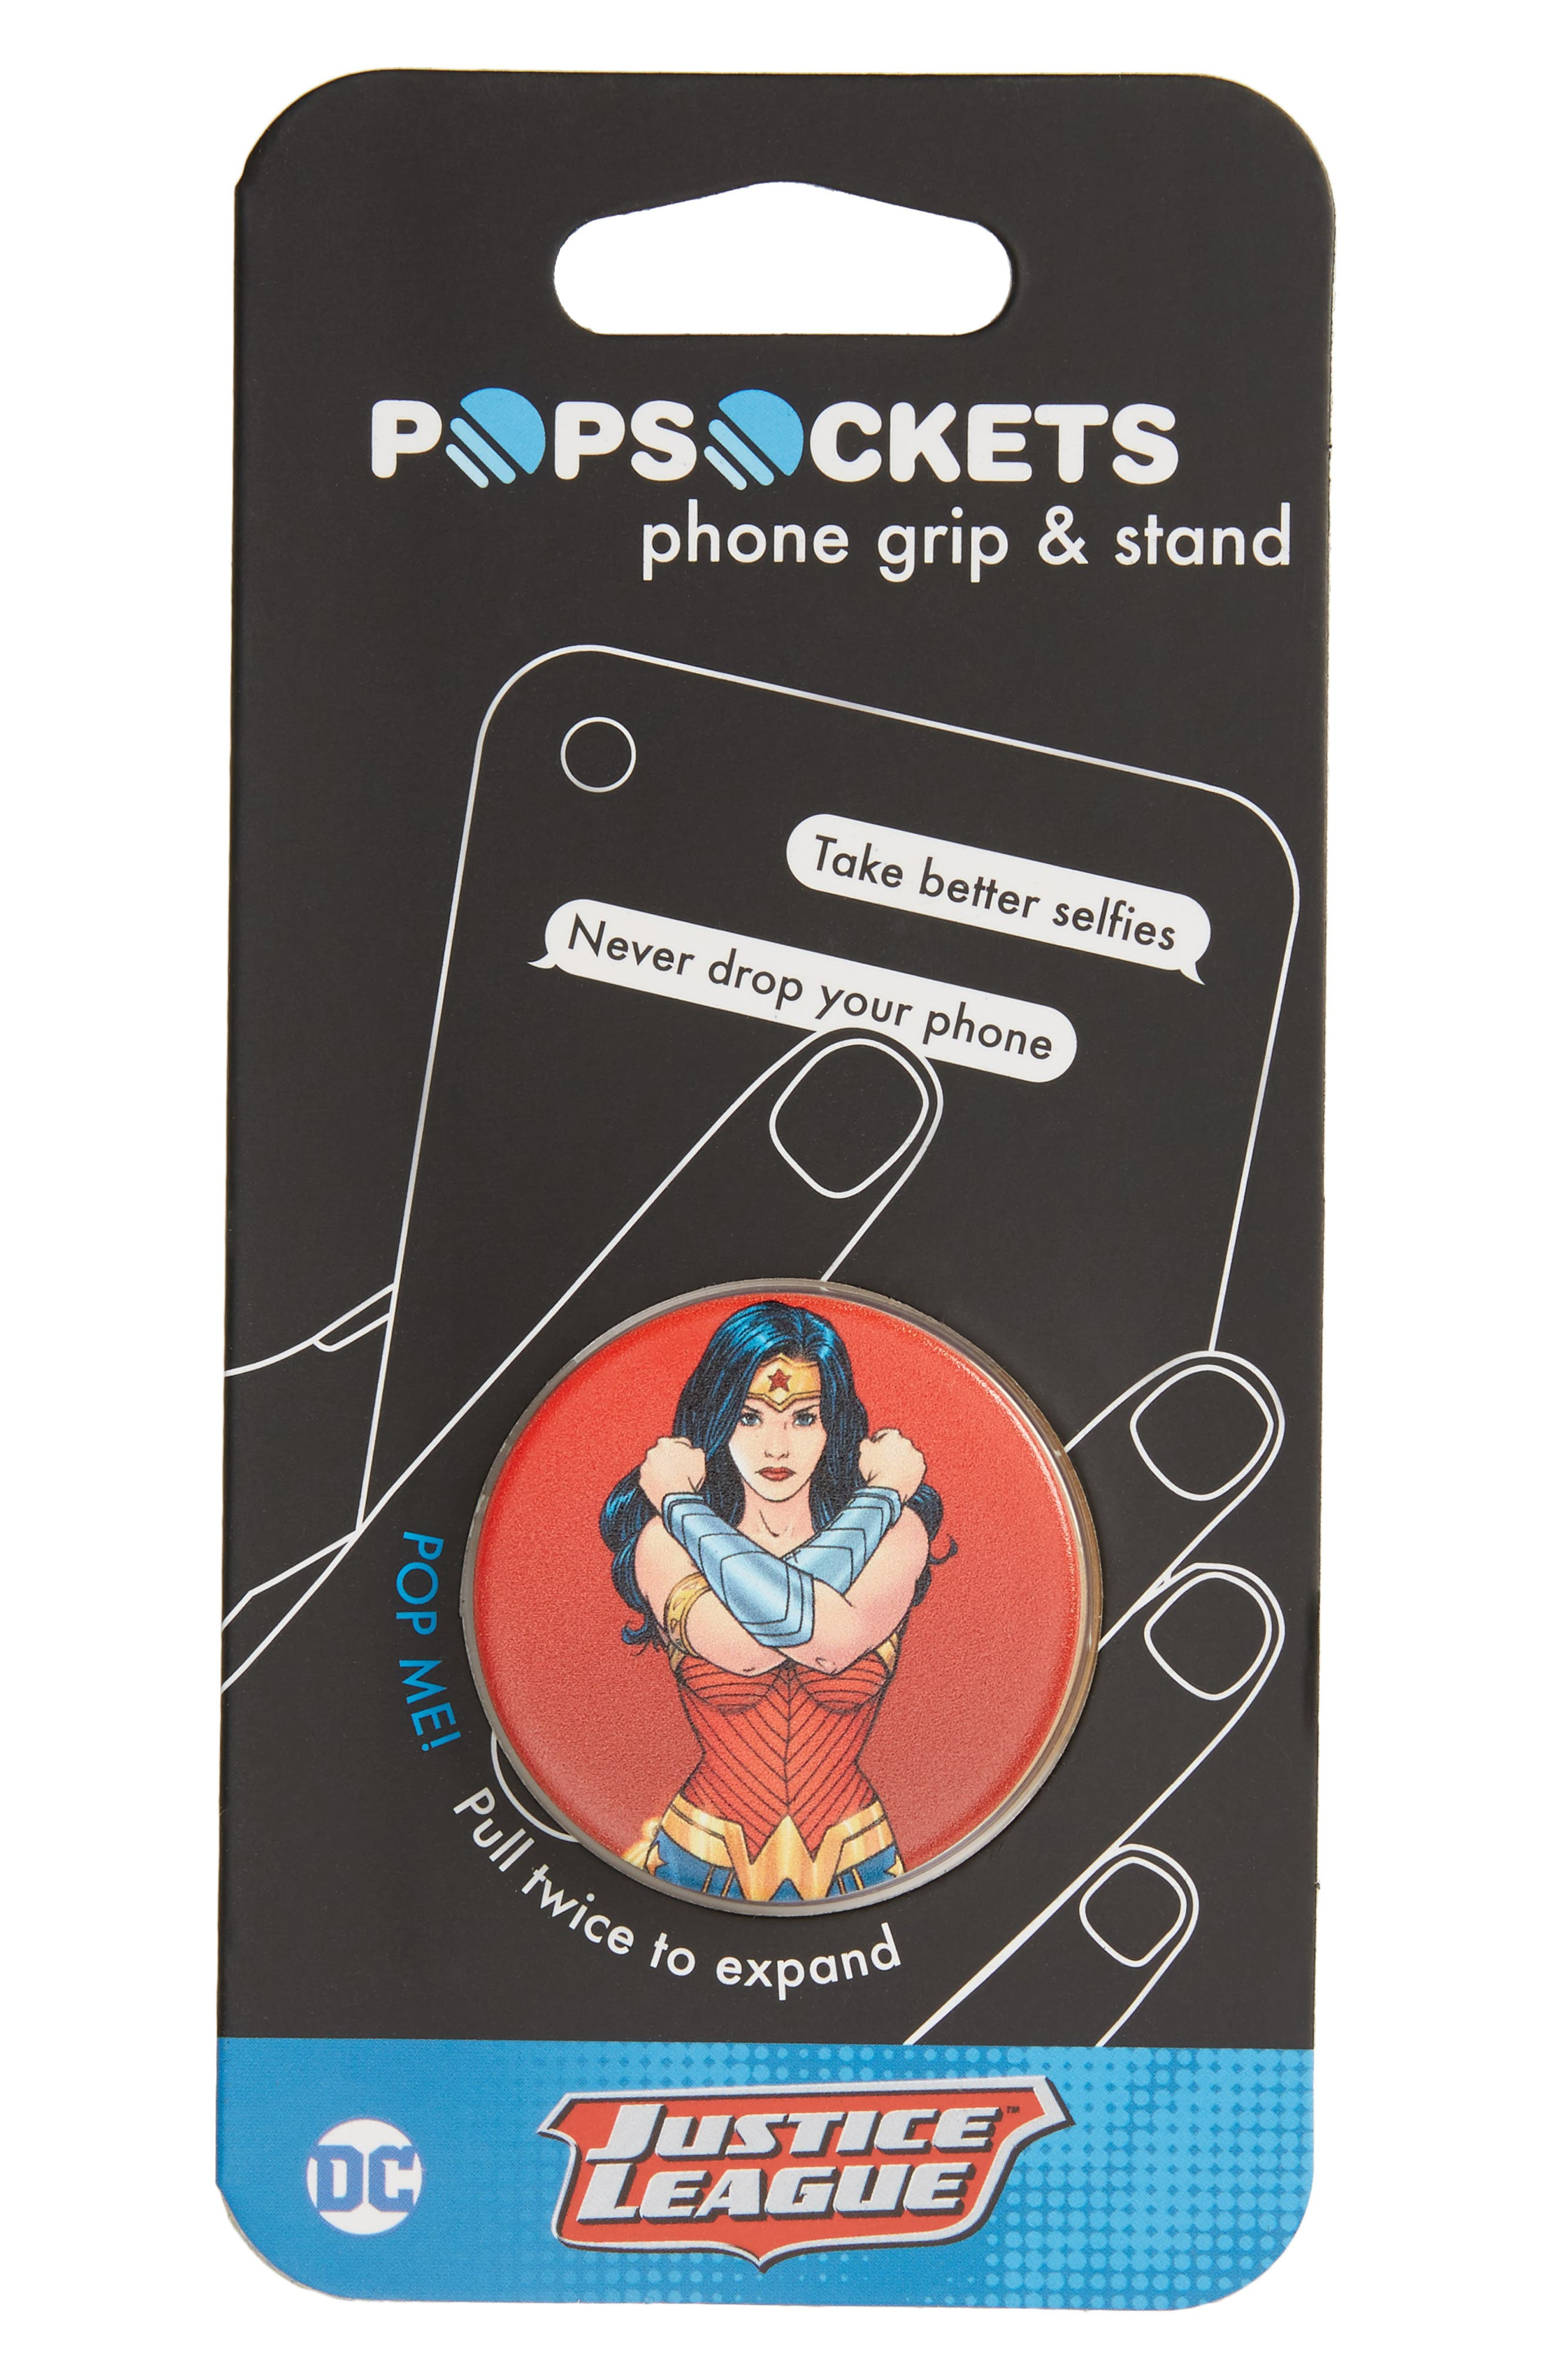 DC Wonder Woman Cell Phone Grip & Stand,                             Main thumbnail 1, color,